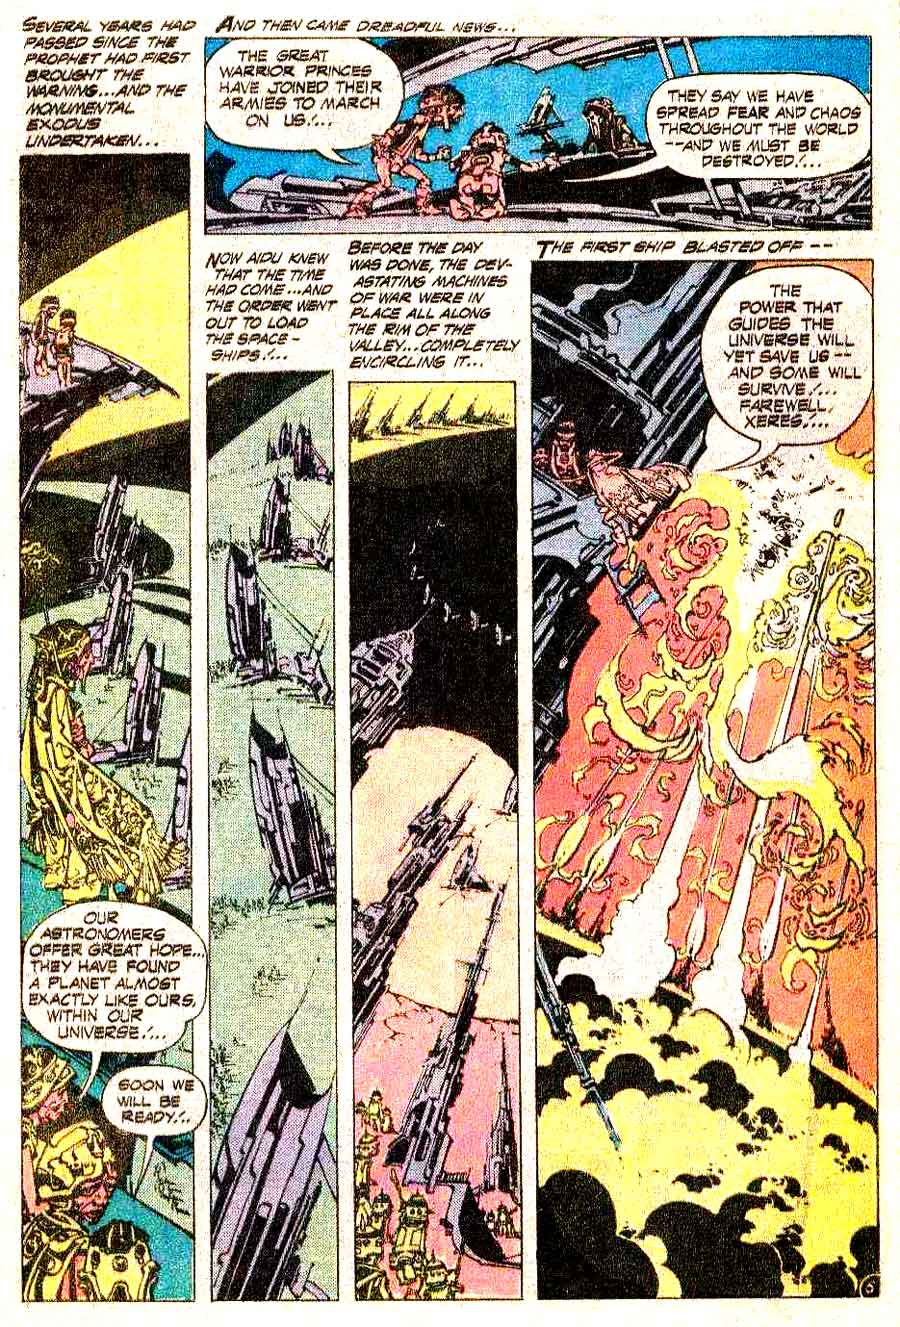 Weird War Tales v1 #31 dc bronze age comic book page art by Alex Nino